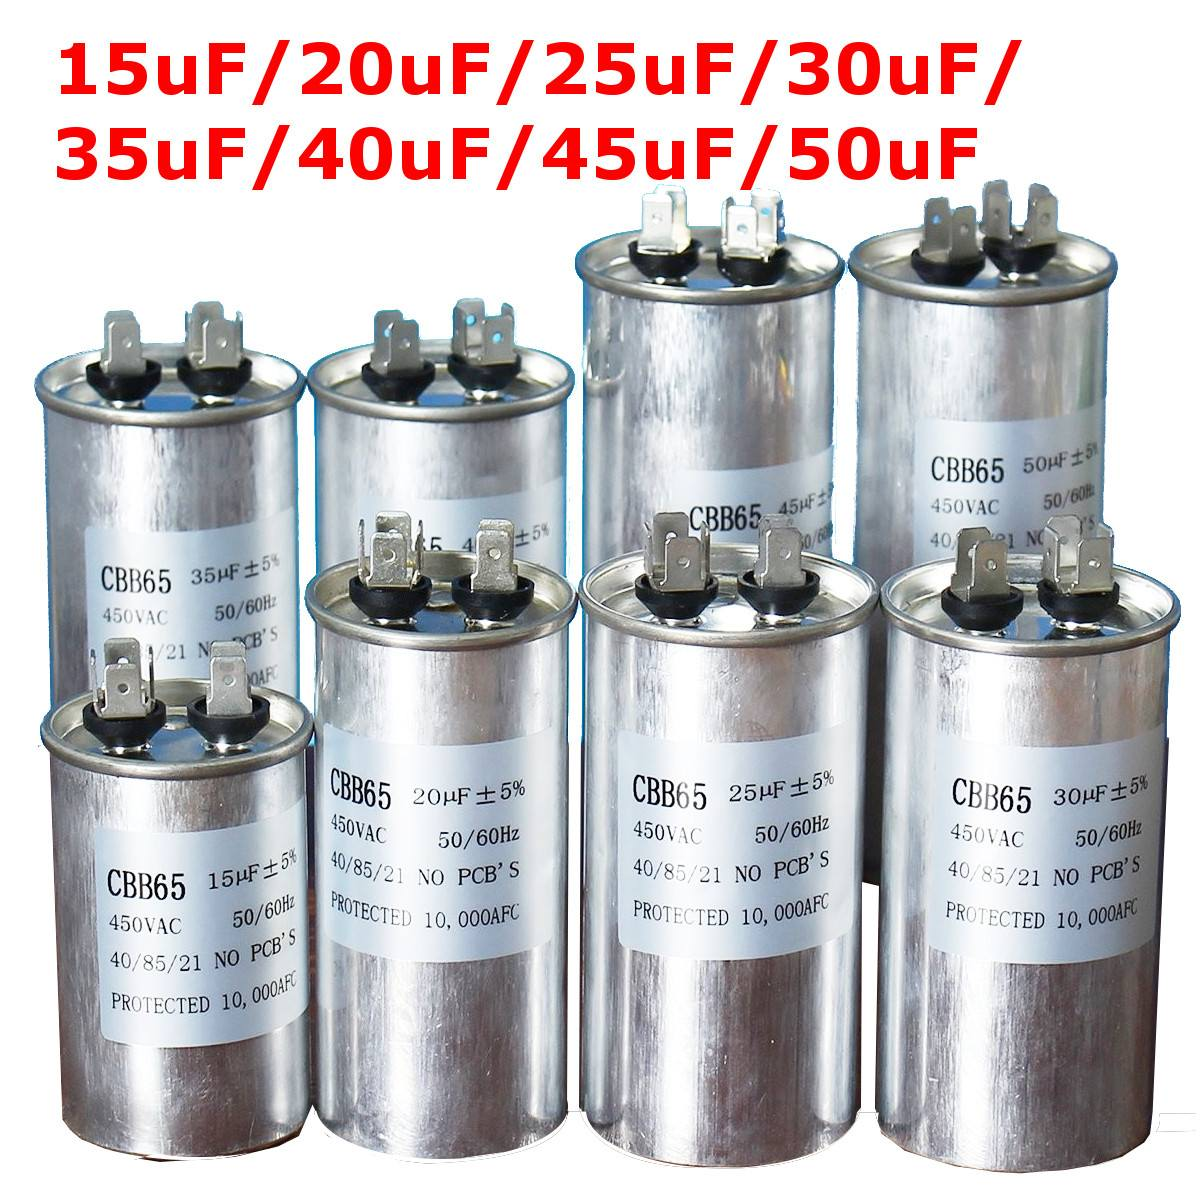 450V AC Motor Capacitor Air Conditioner Compressor Start Capacitor CBB65 15uF 20uF 25uF 30uF 35uF 40uF 45uF 50uF Refrigerator image